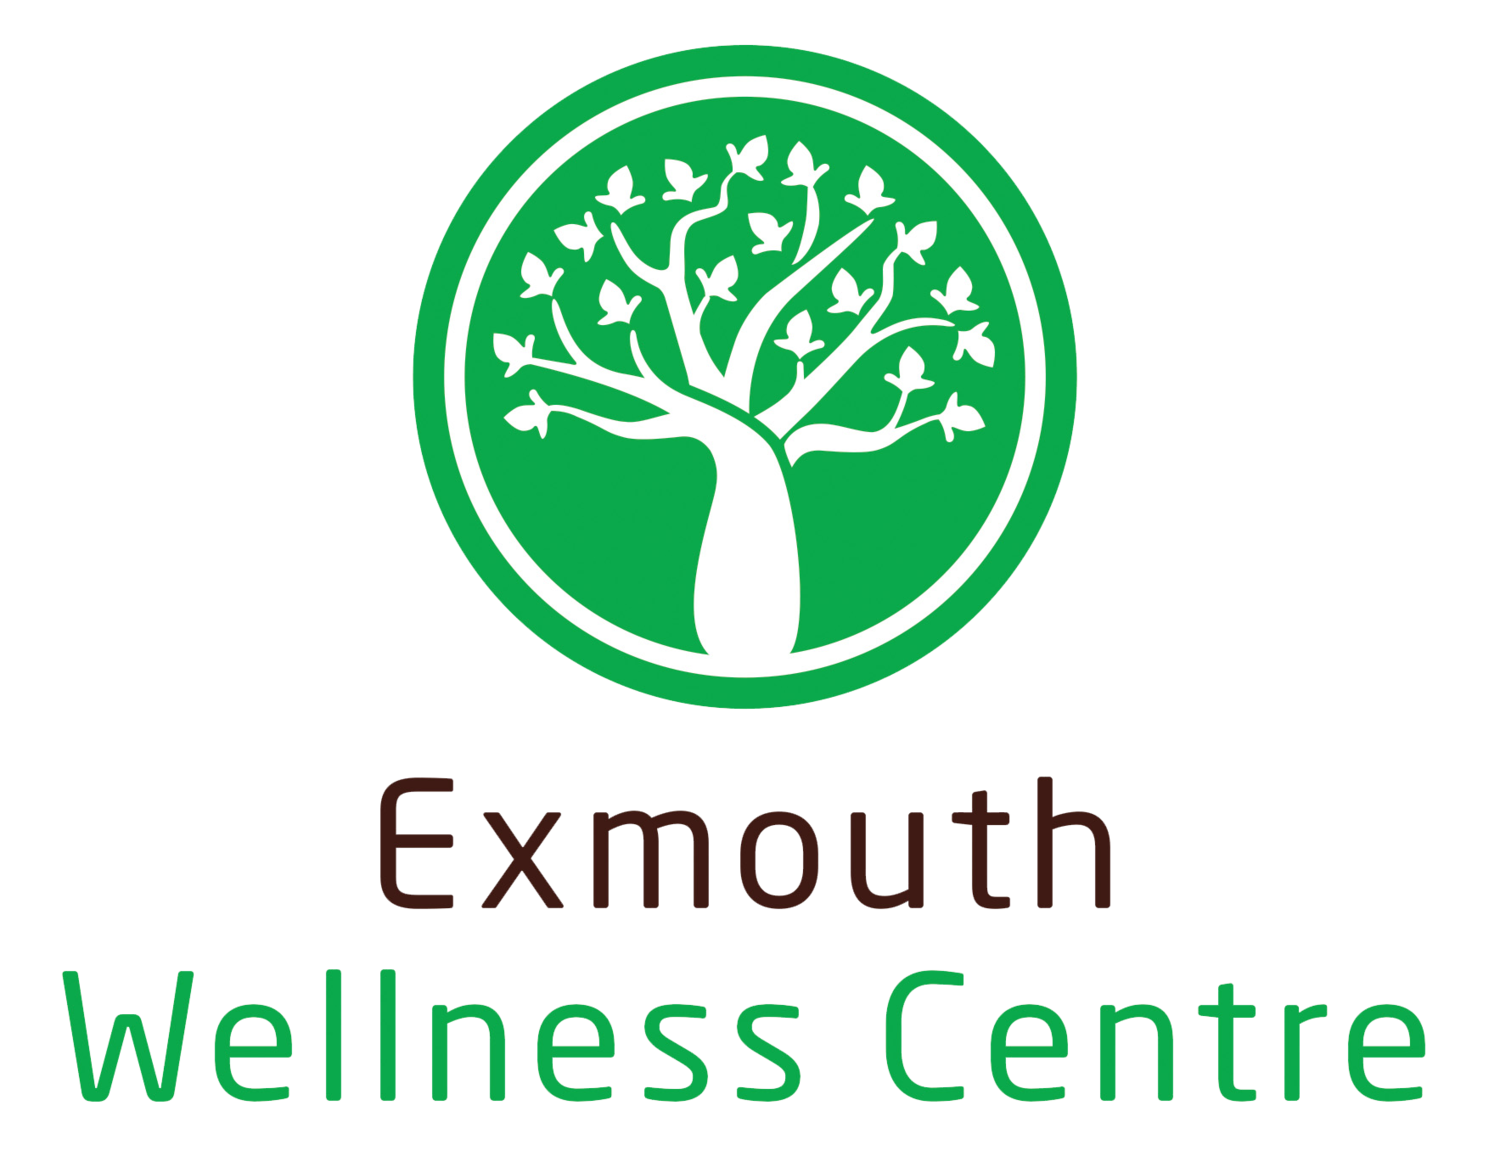 Exmouth Wellness Centre